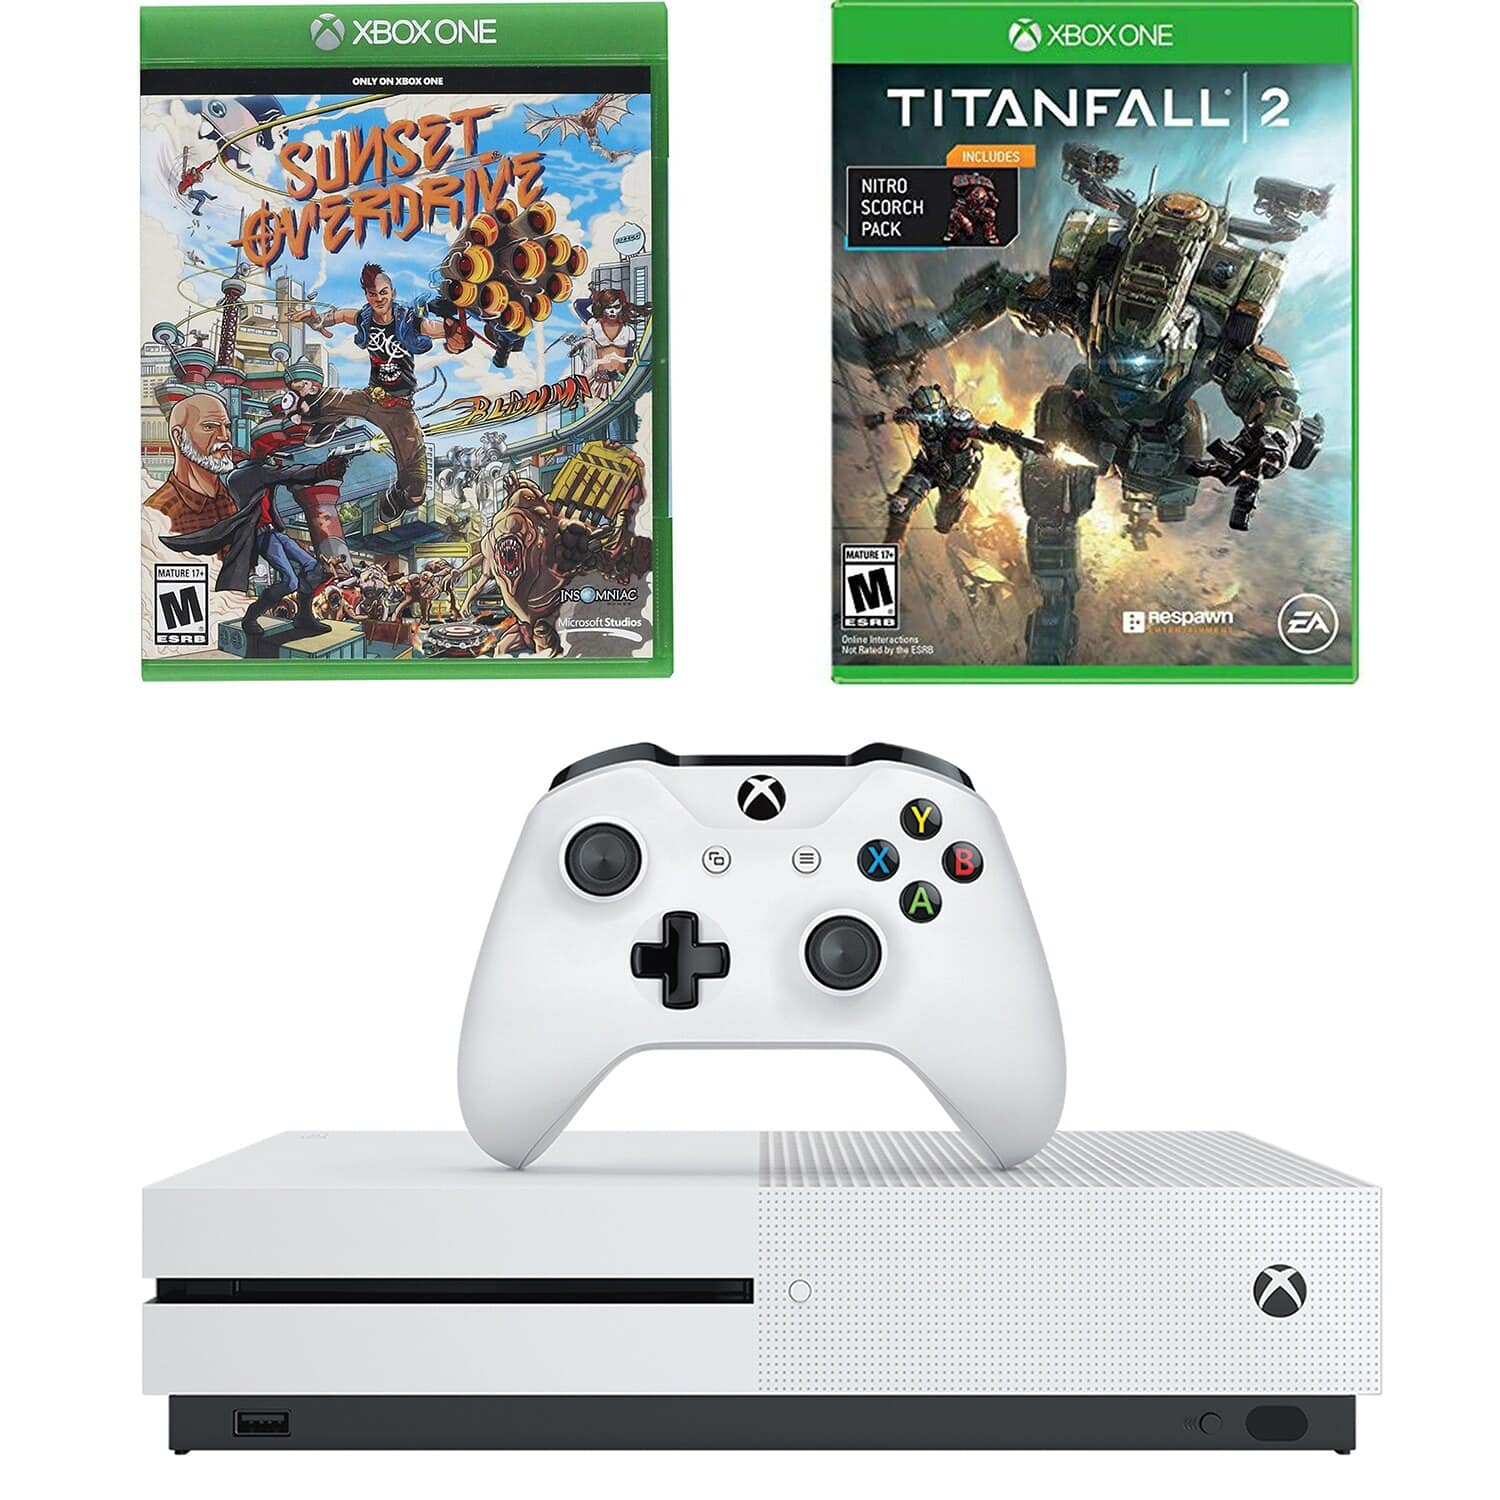 Xbox One S 1TB Console Titanfall 2 & Sunset Overdrive Bundle - $179.99 + Free Shipping